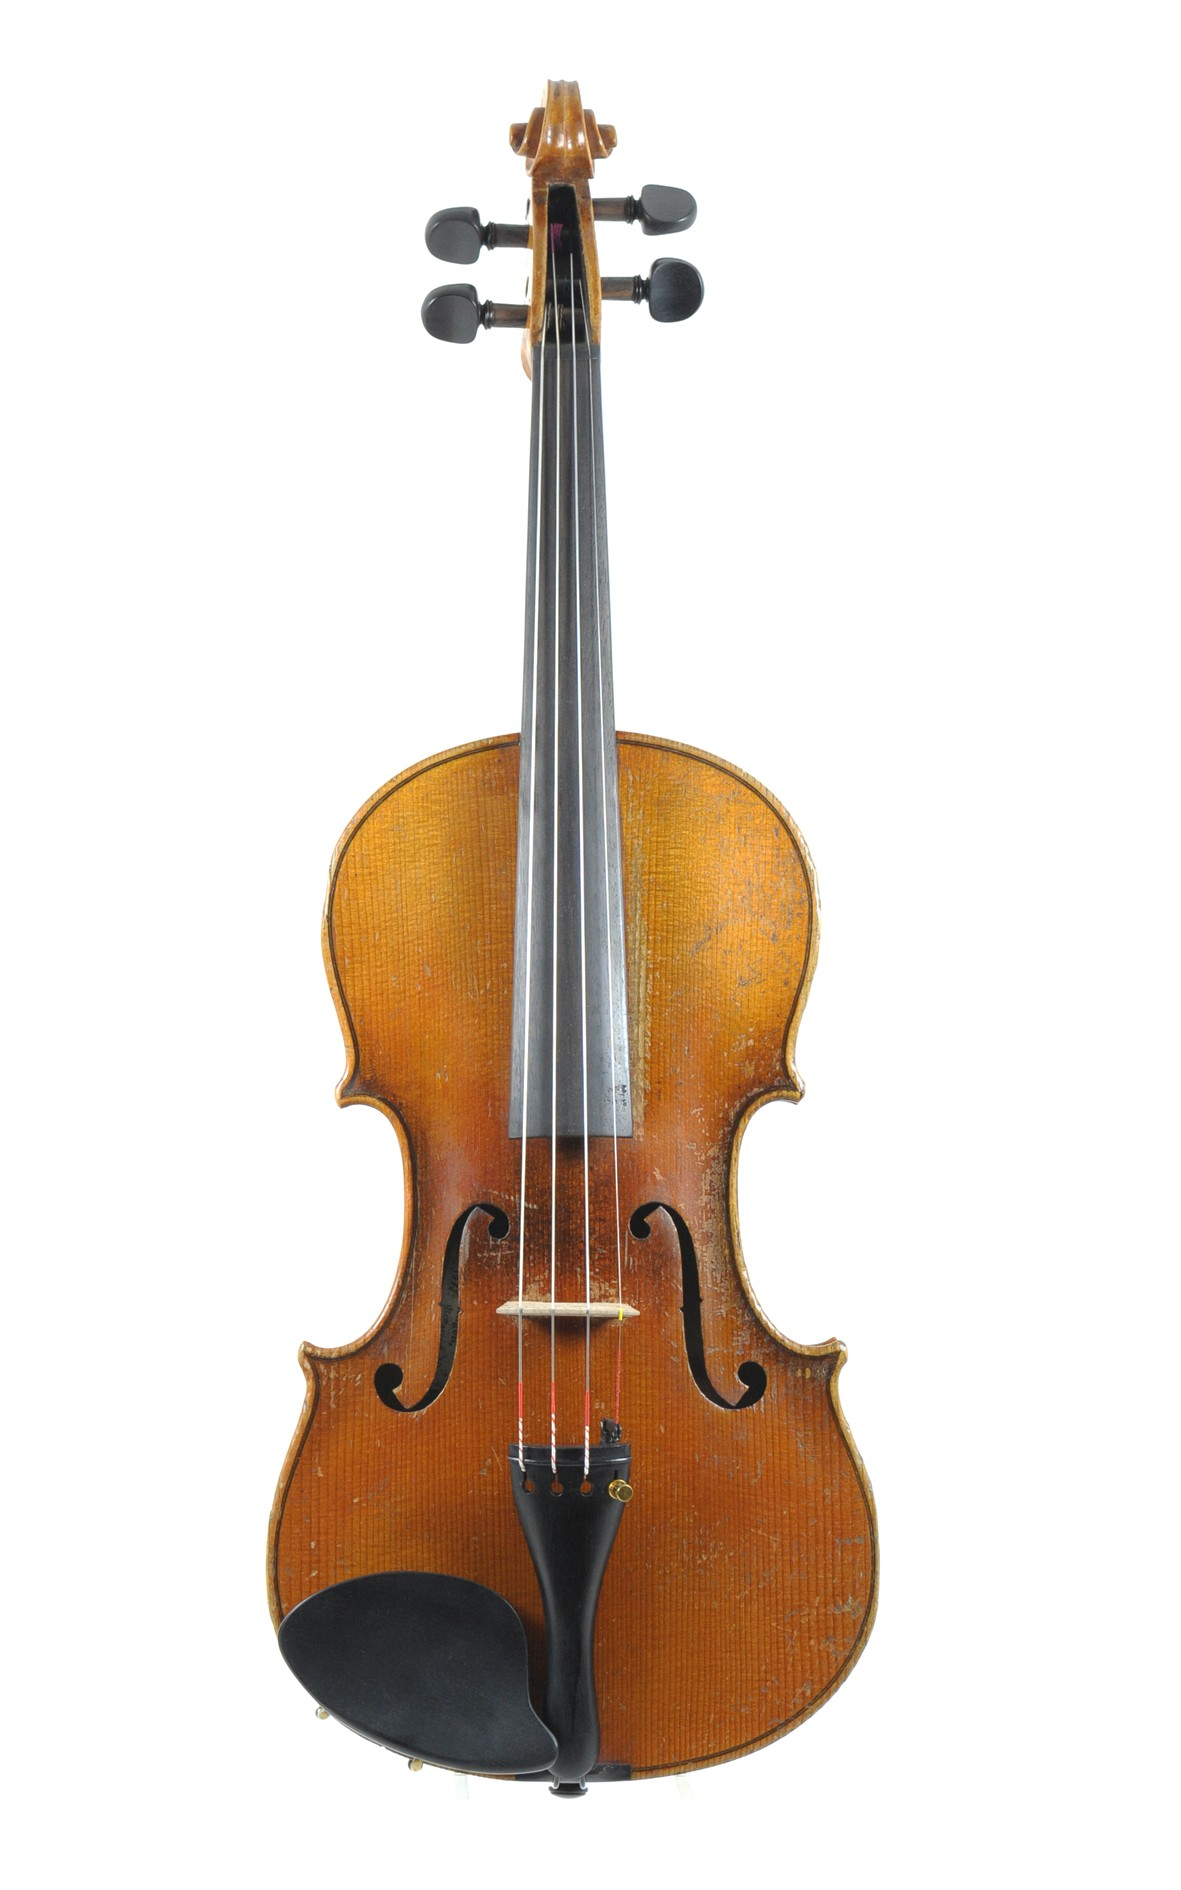 Violin from Saxony, approx. 1900 - top